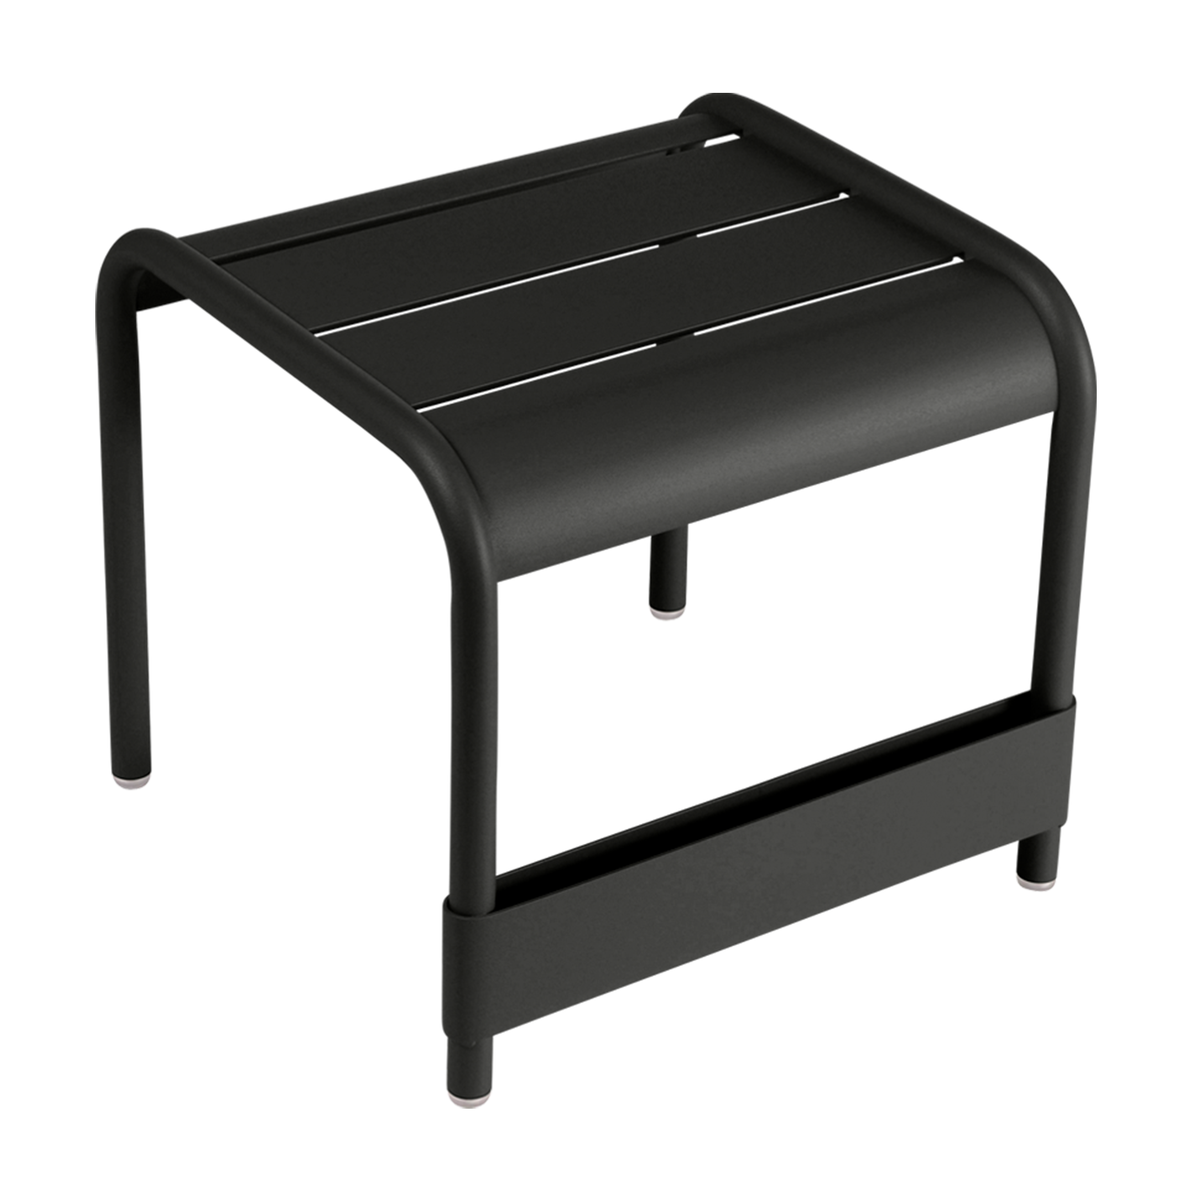 Fermob Luxembourg table/footrest, liquorice from Fermob